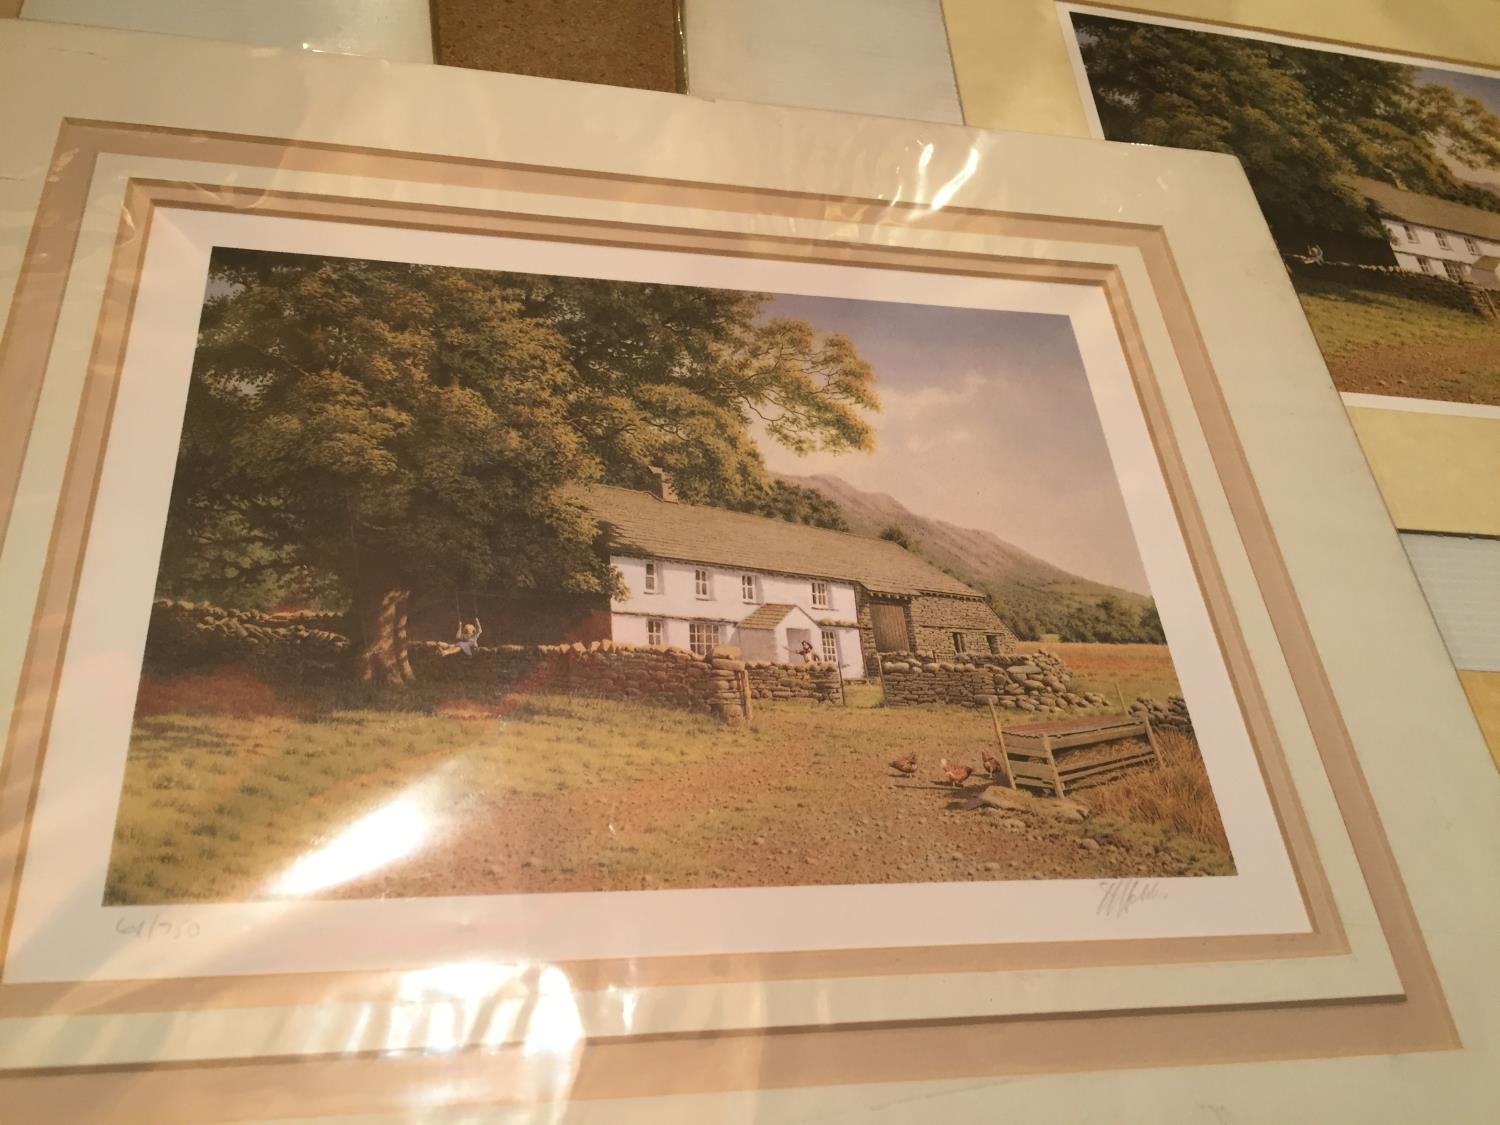 THREE MOUNTED SIGNED PRINTS OF FARM SCENES IN A HARDBACK PROTECTIVE FOLDER - Image 8 of 12